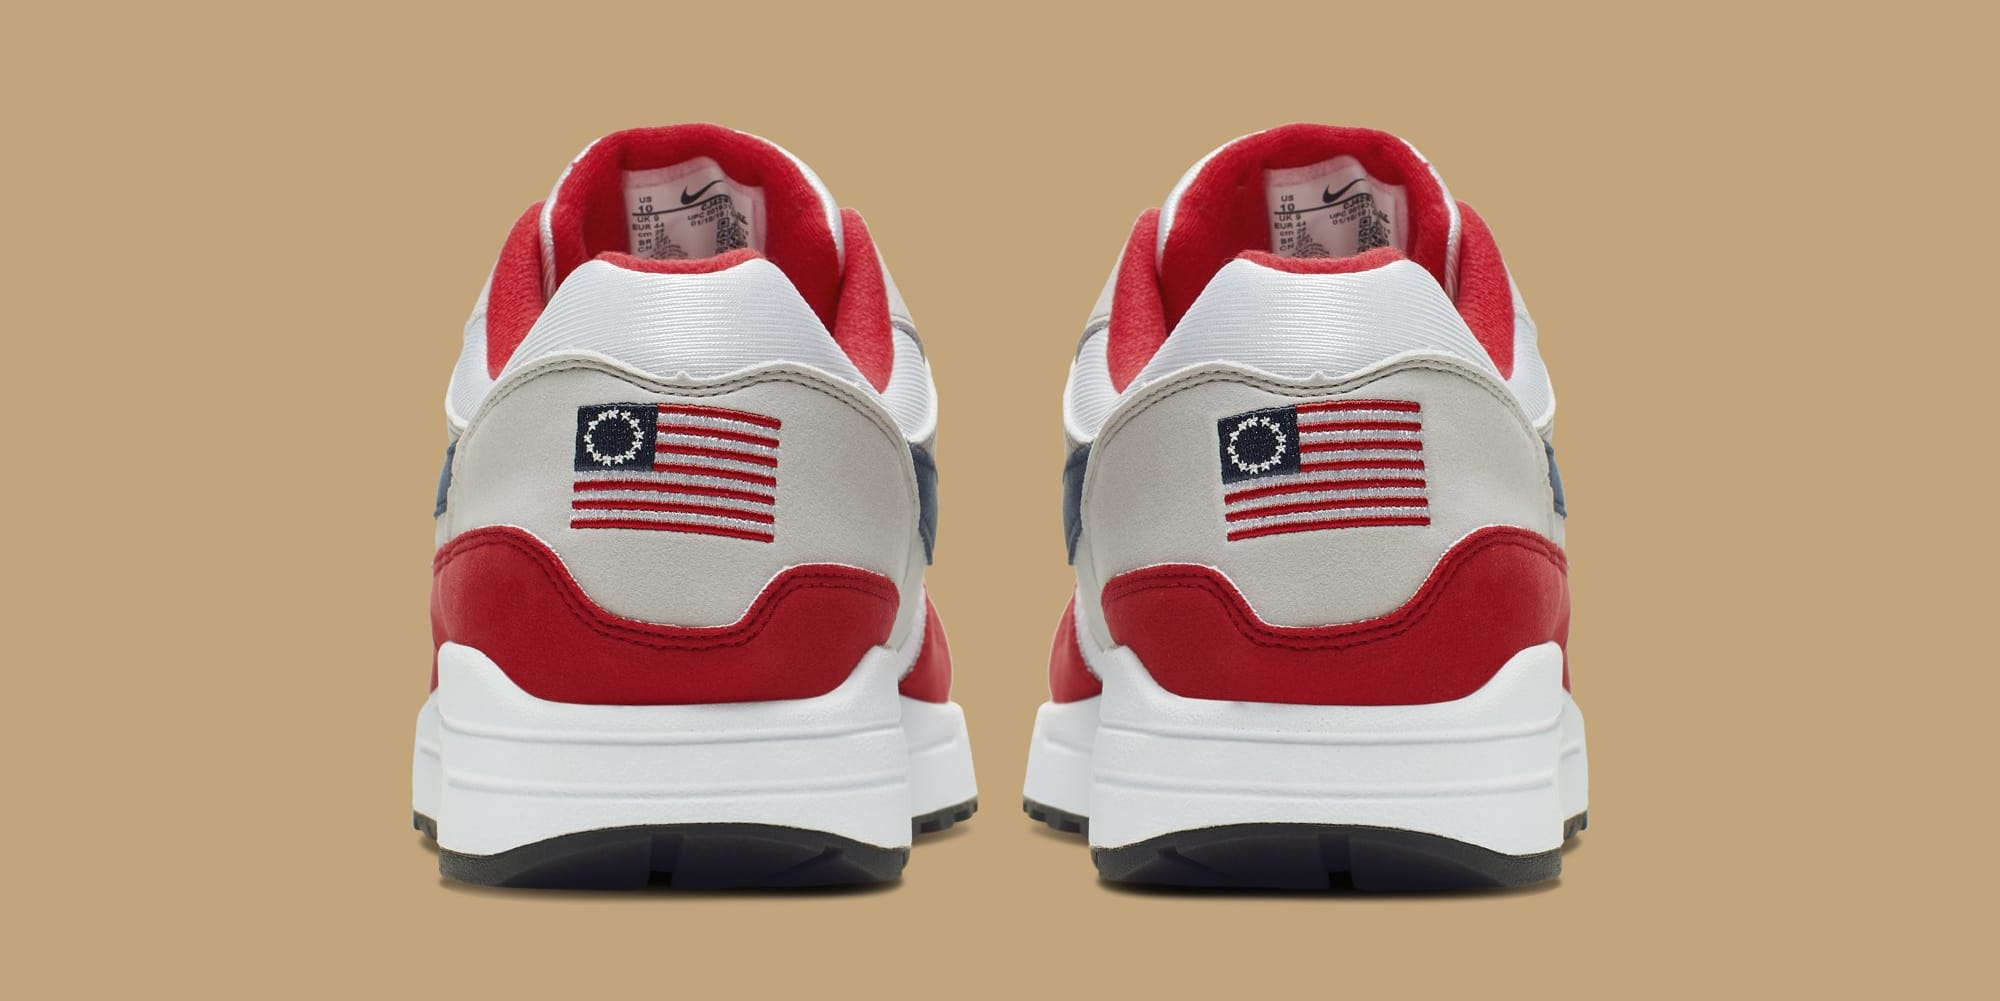 Nike Air Max 1 'Fourth of July' CJ4283-100 (Heel)